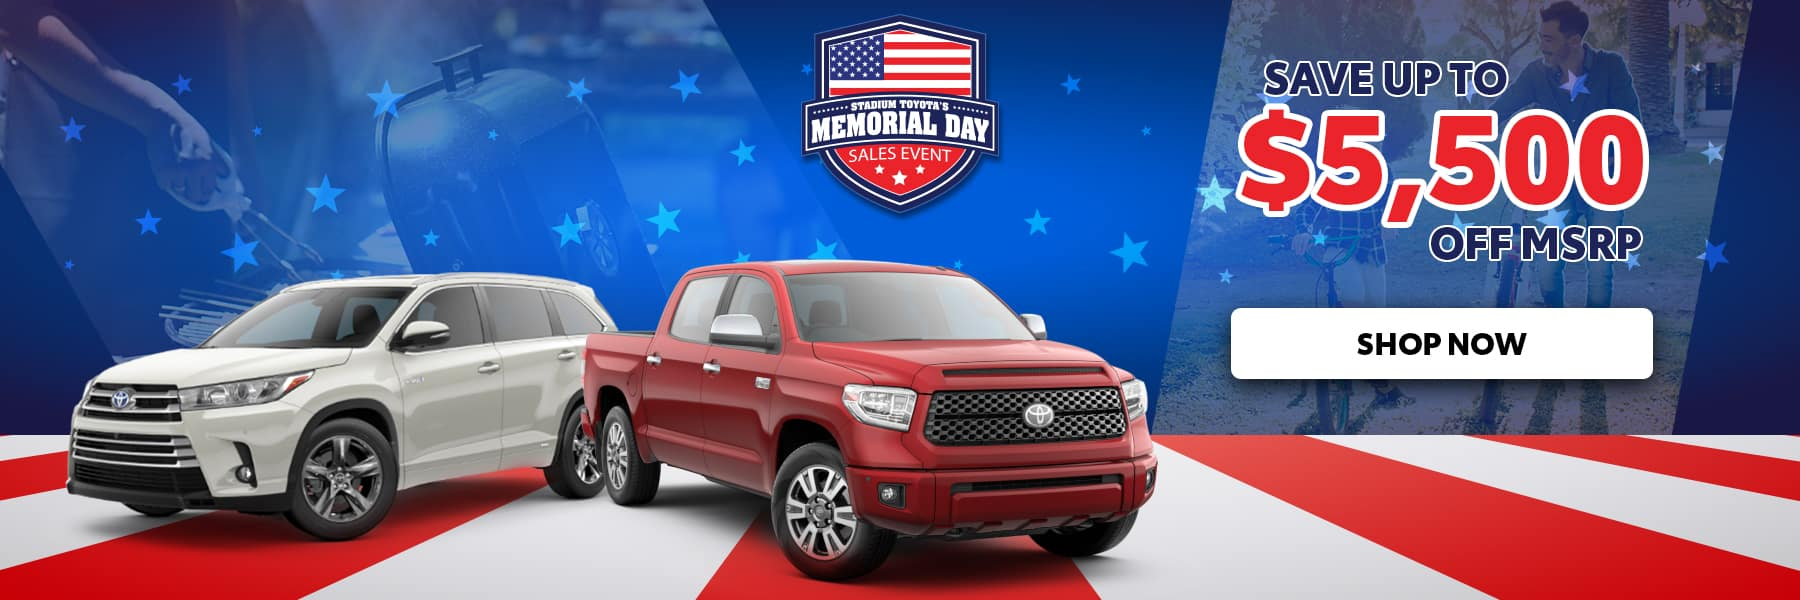 Memorial Day Up To $5500 Off MSRP